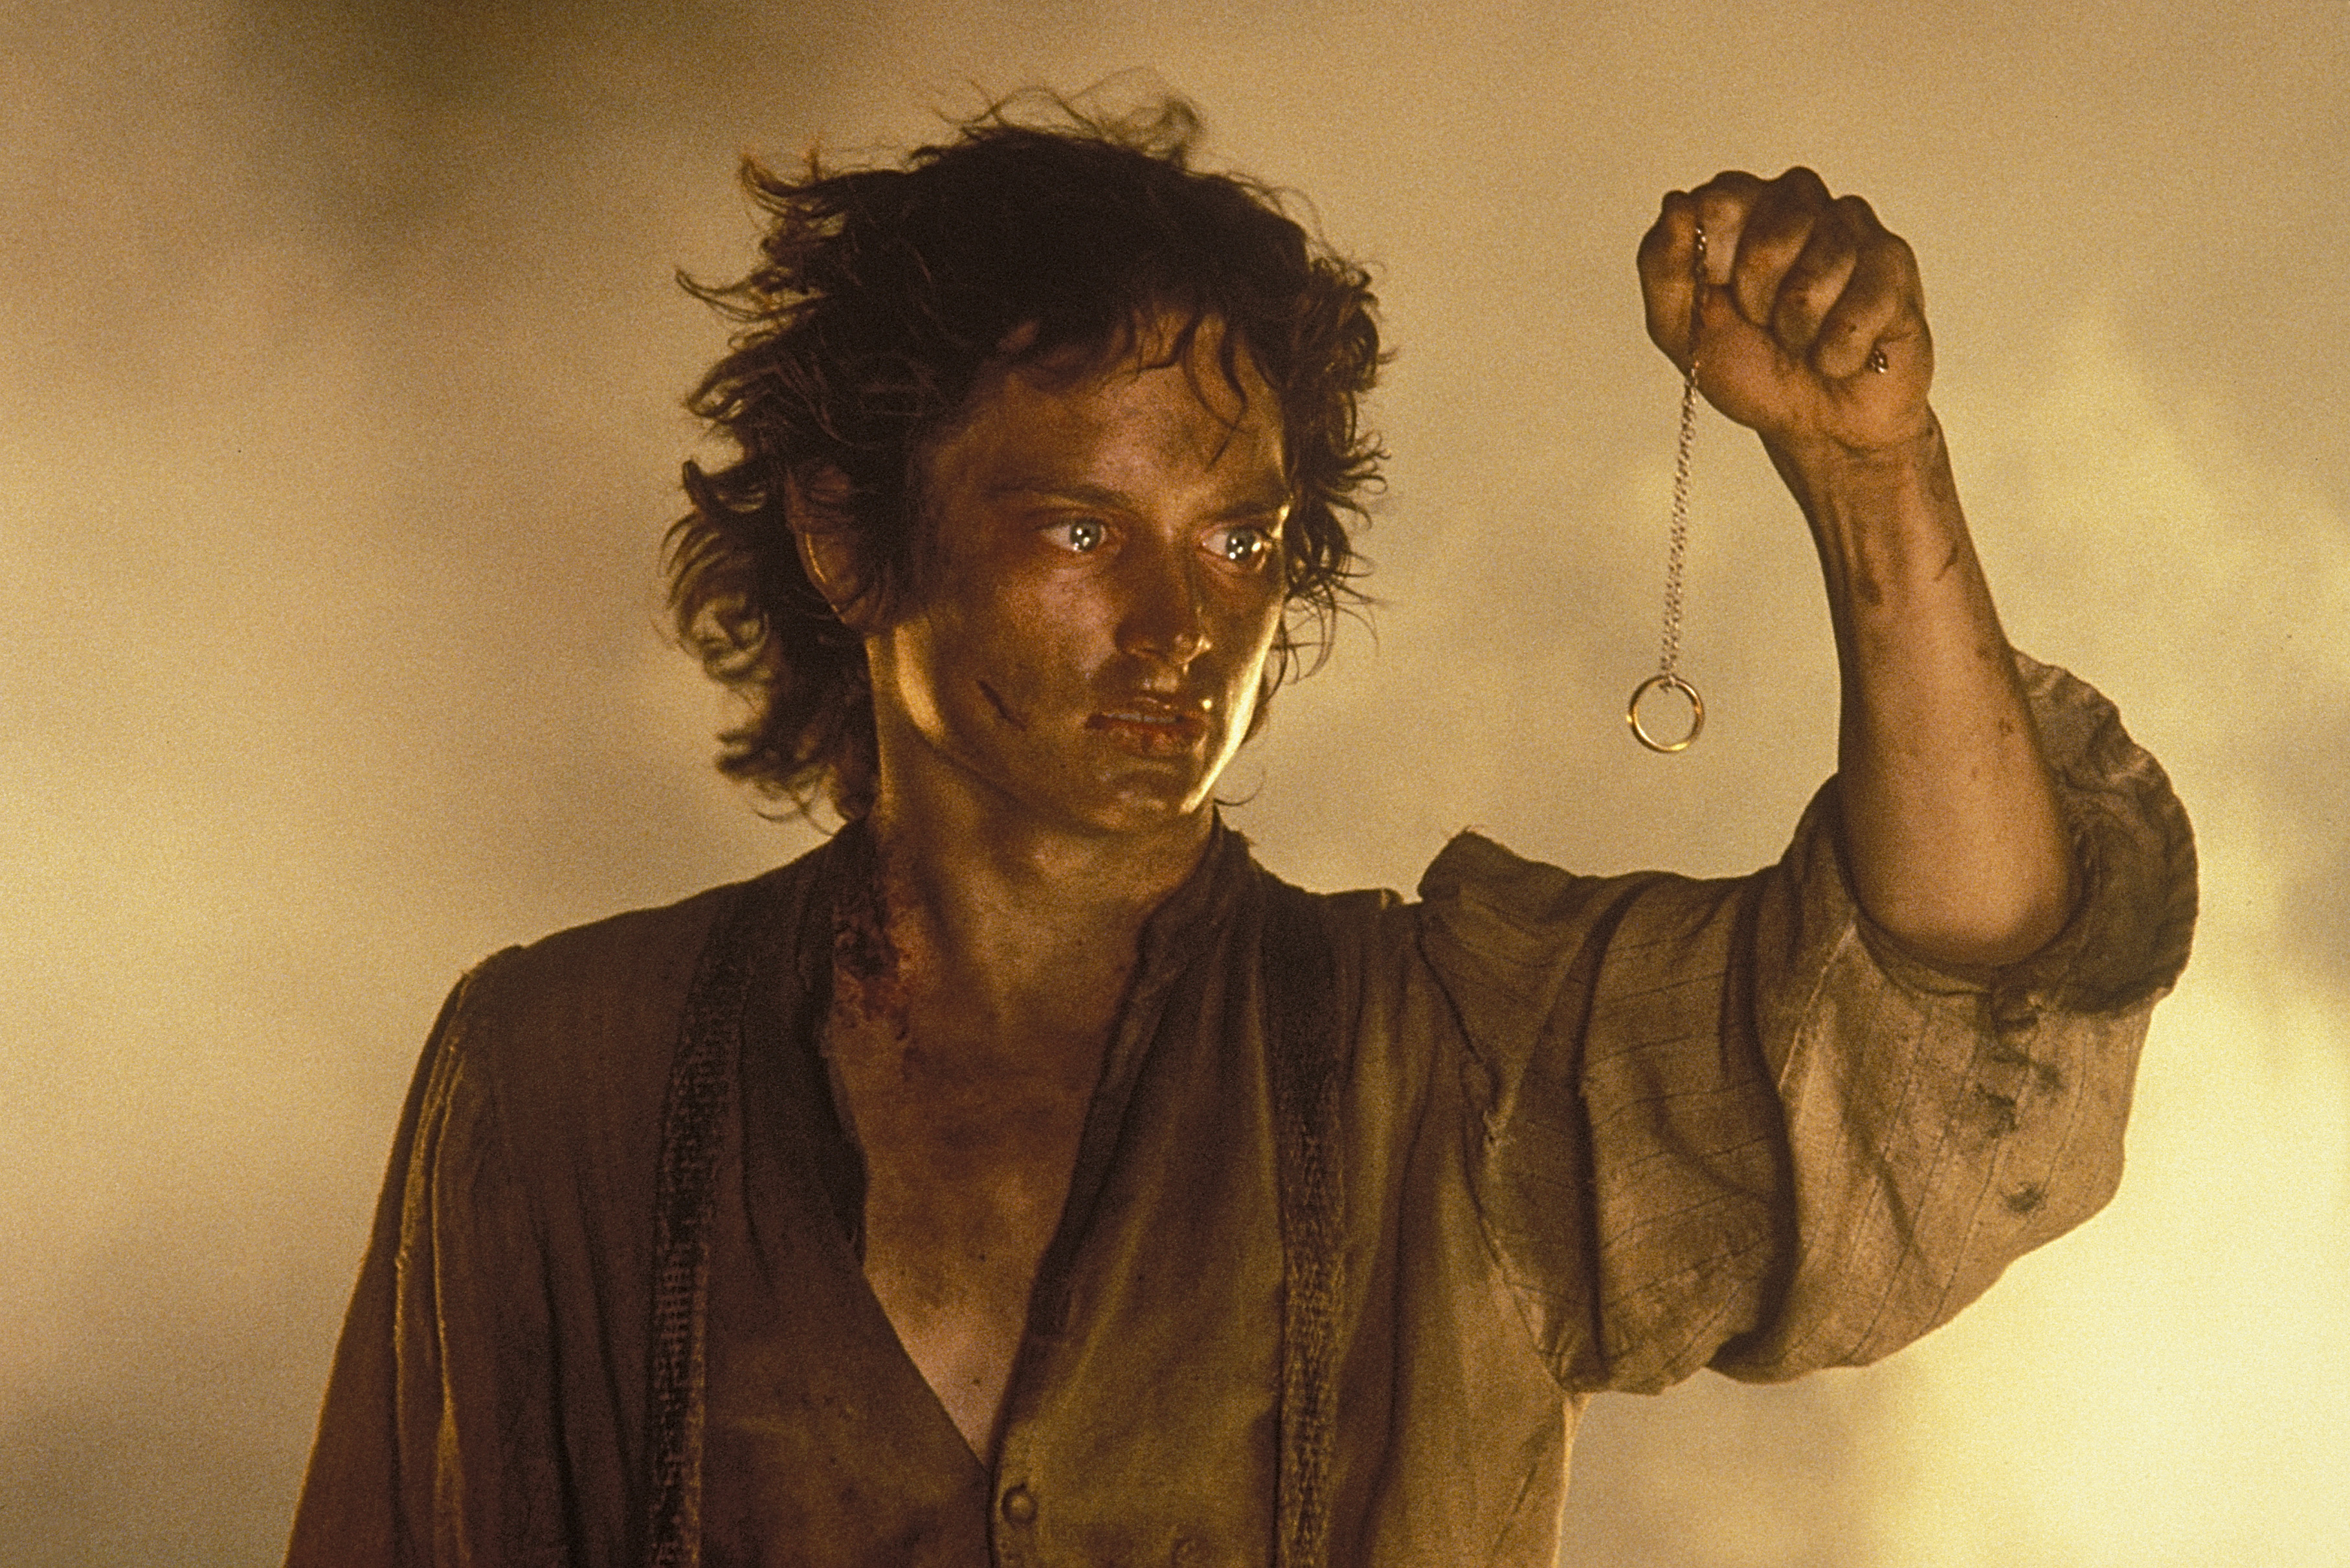 Elijah Wood as Frodo Baggins in 'The Lord of the Rings: The Return of the King.'